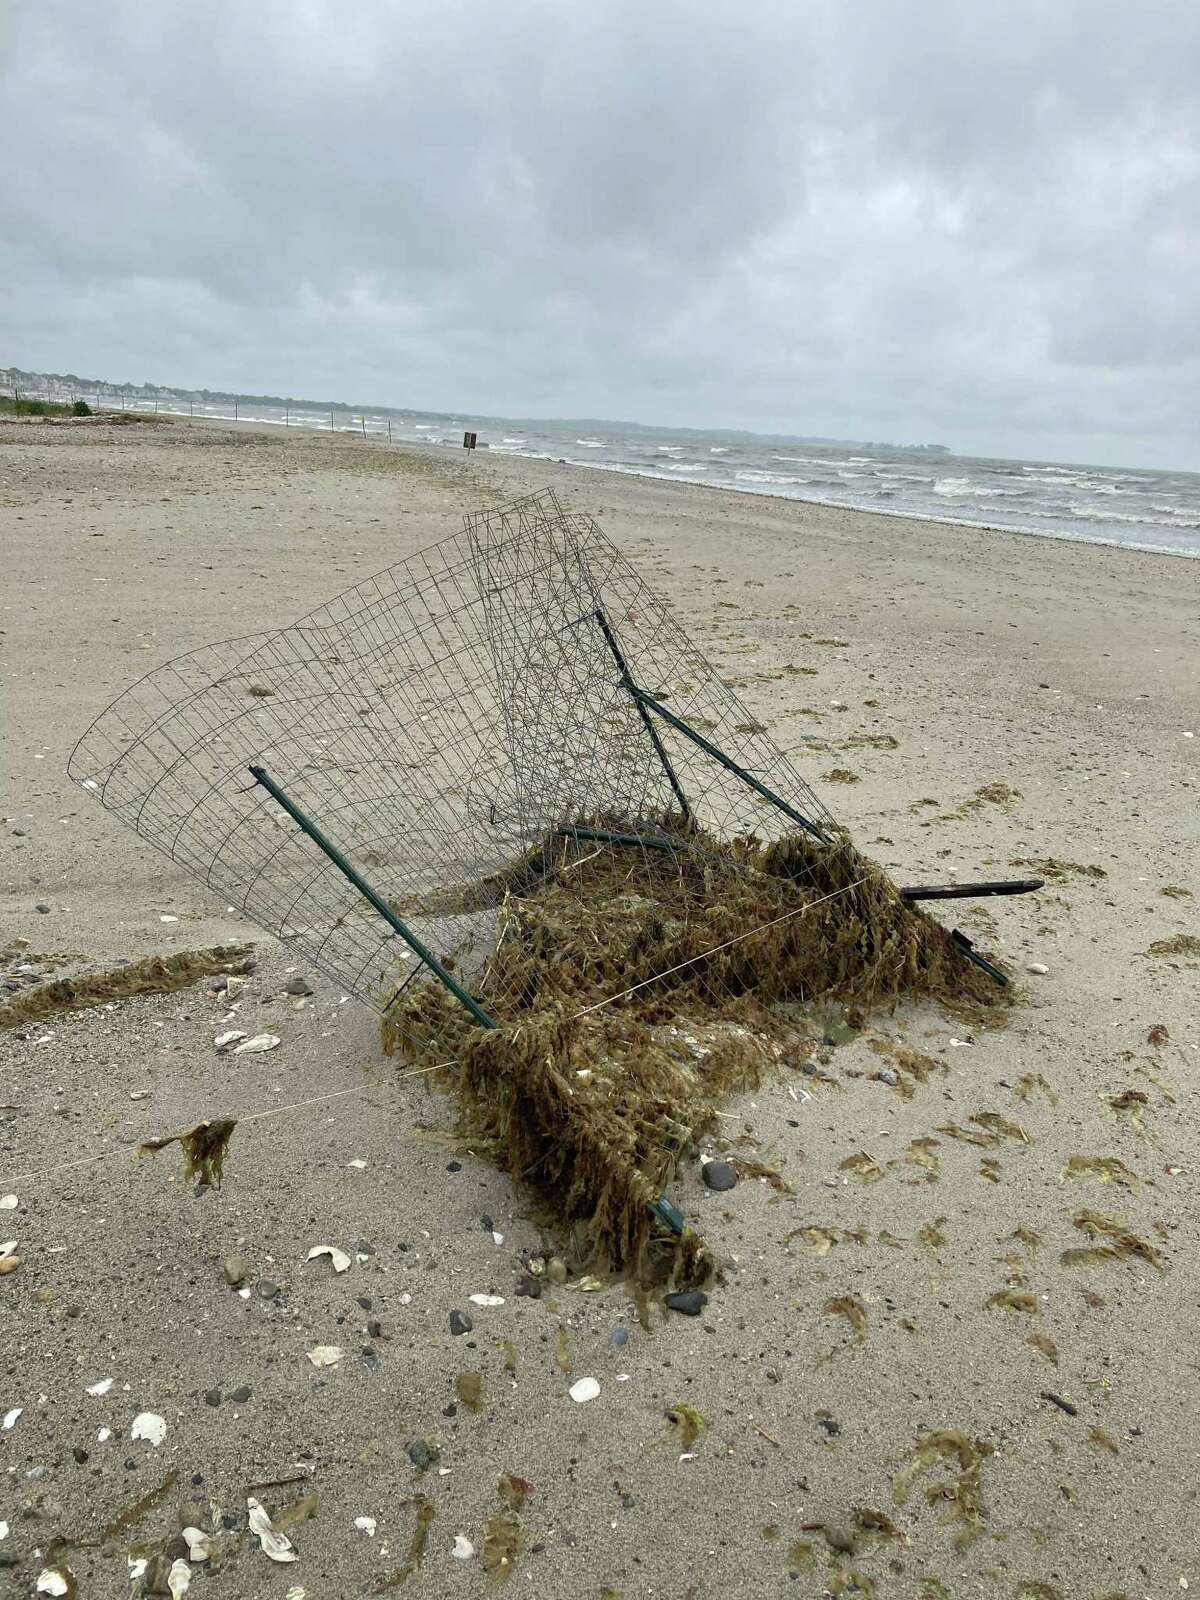 Flooding wiped away the nests of endangered birds at Milford Point in recent days, and the public's care is required for them to recover, according to the Connecticut Audubon Society. Here, a piping plover nest.